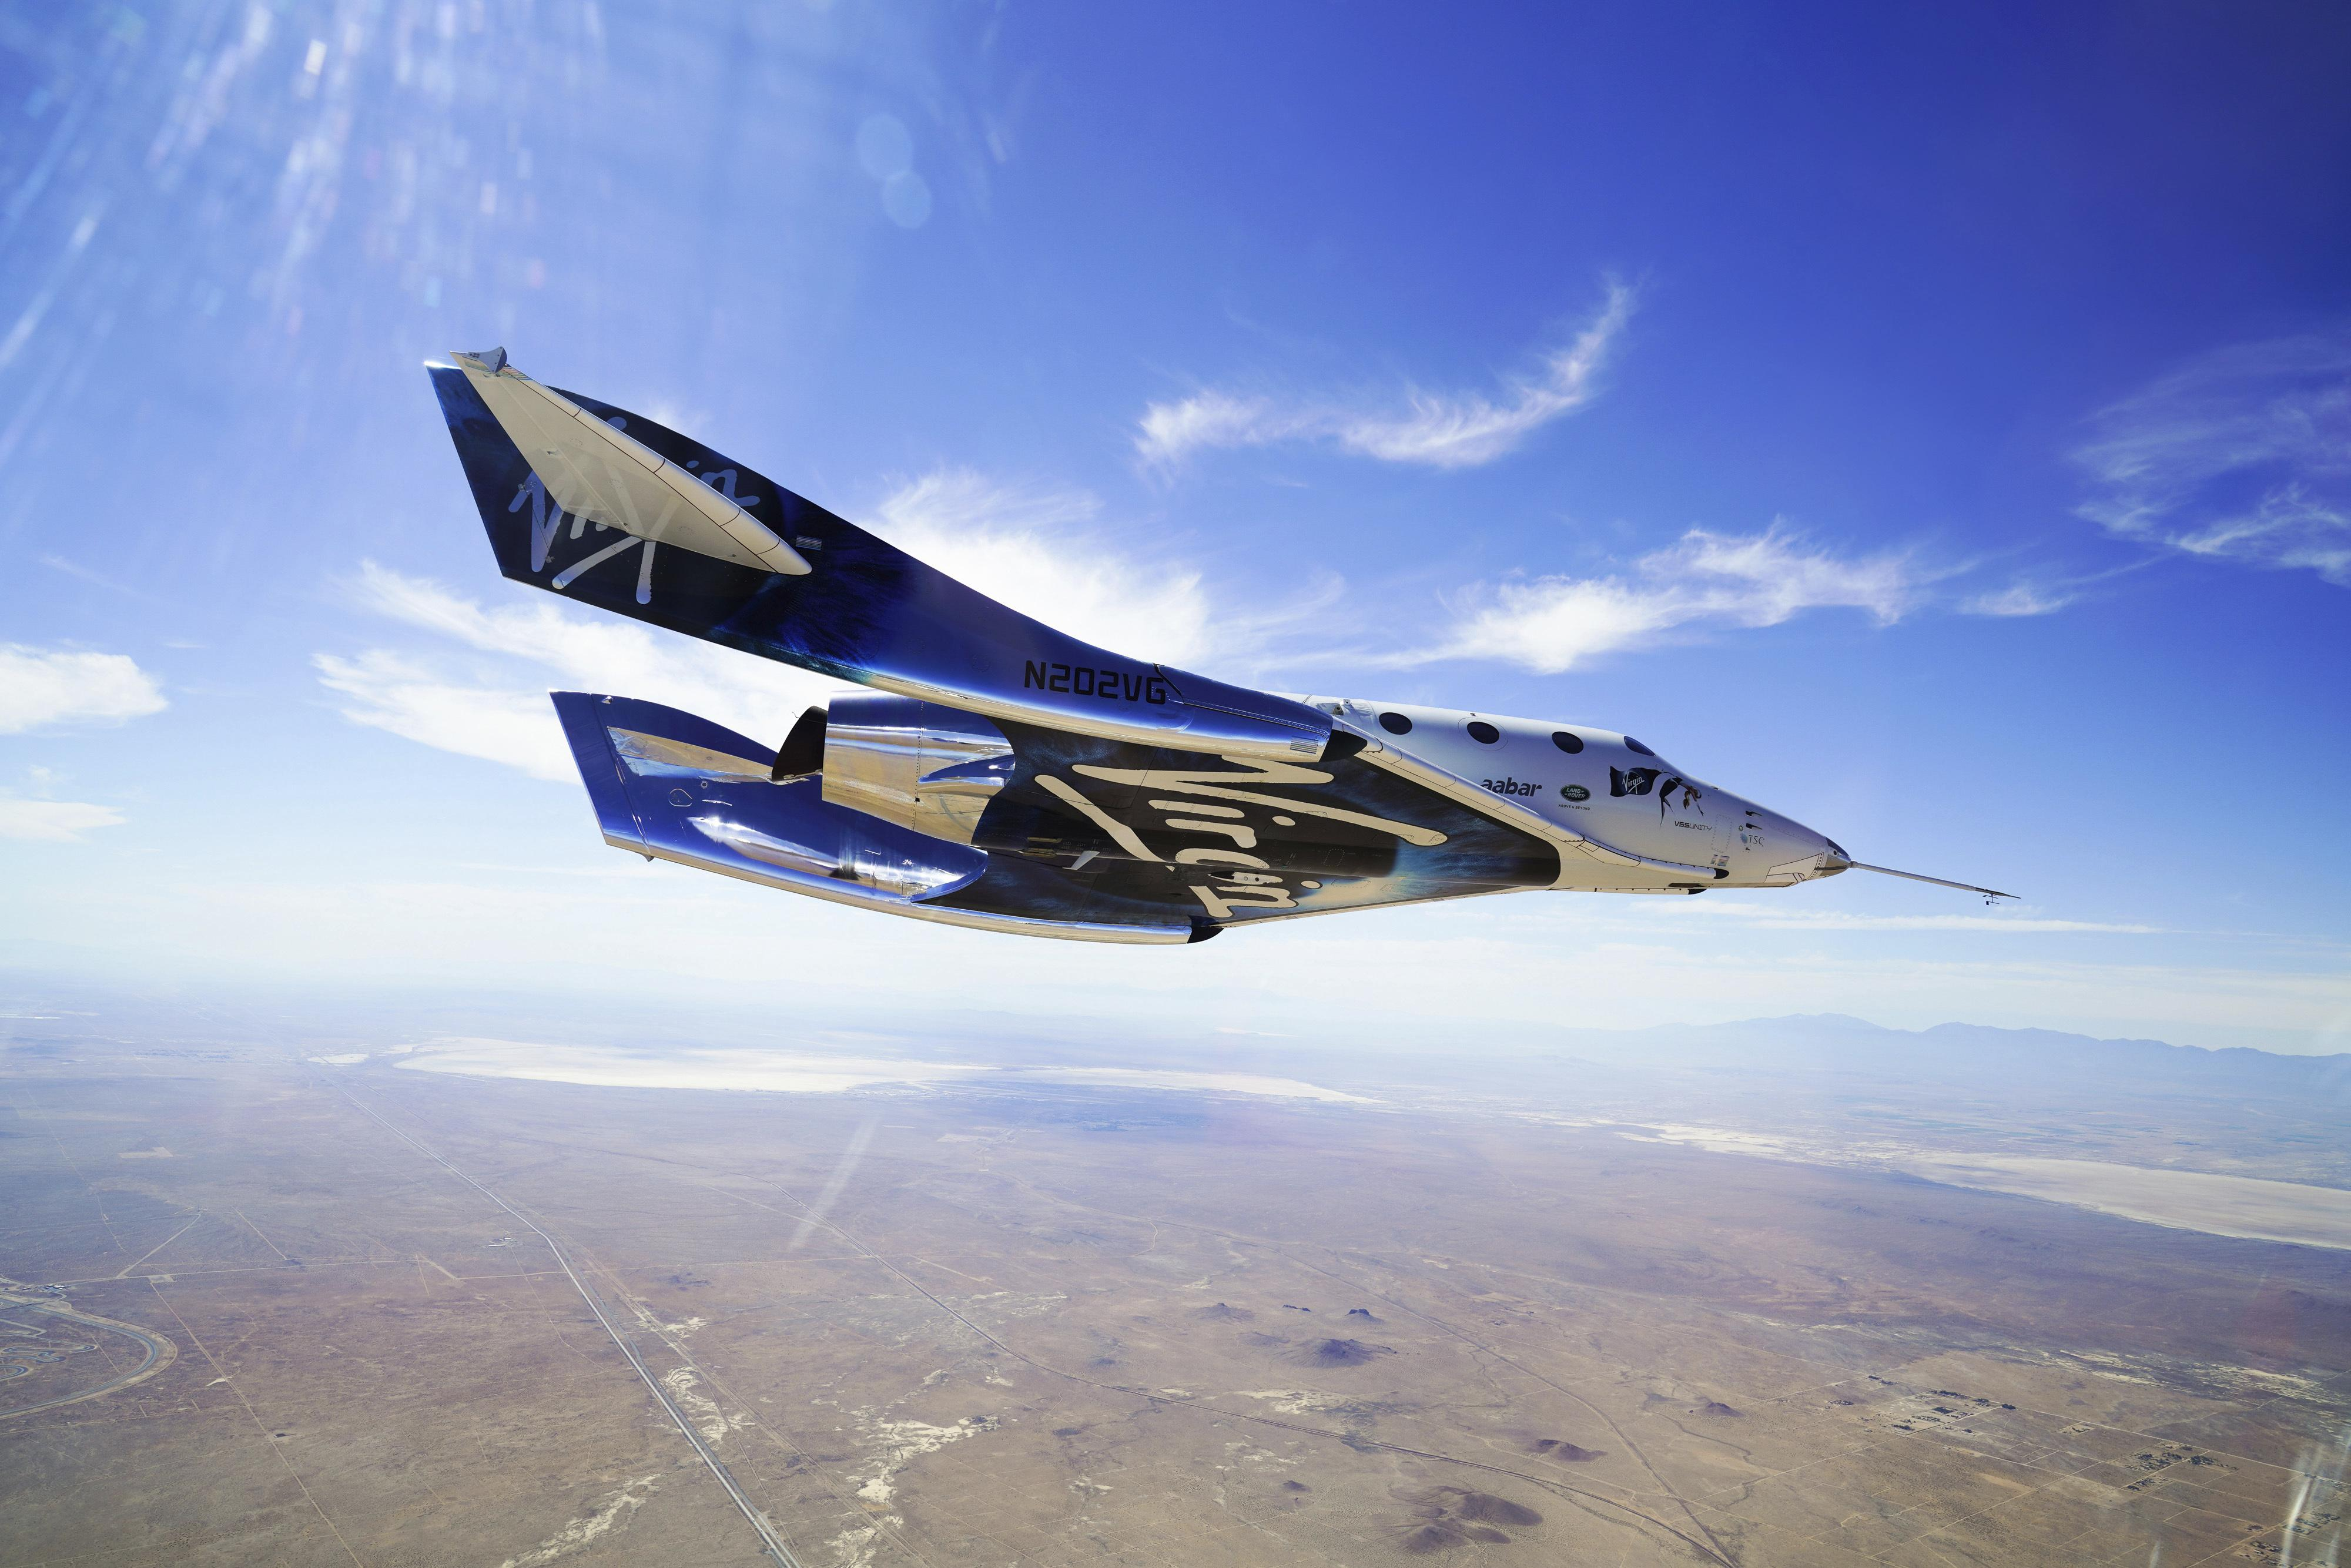 Virgin Galactic aims to reach space soon with tourism rocket | The